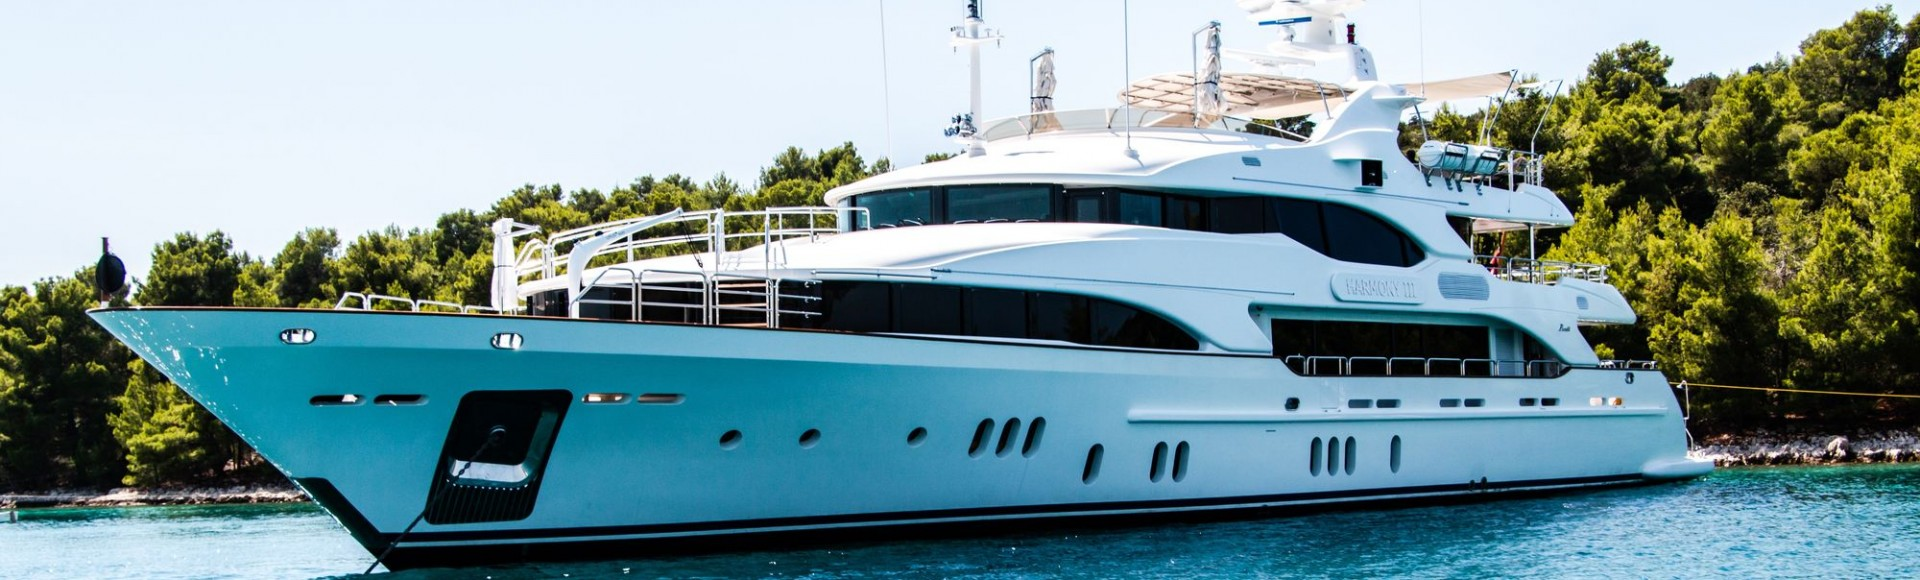 Insurances for Yachts & Recreational Vessels in Spain